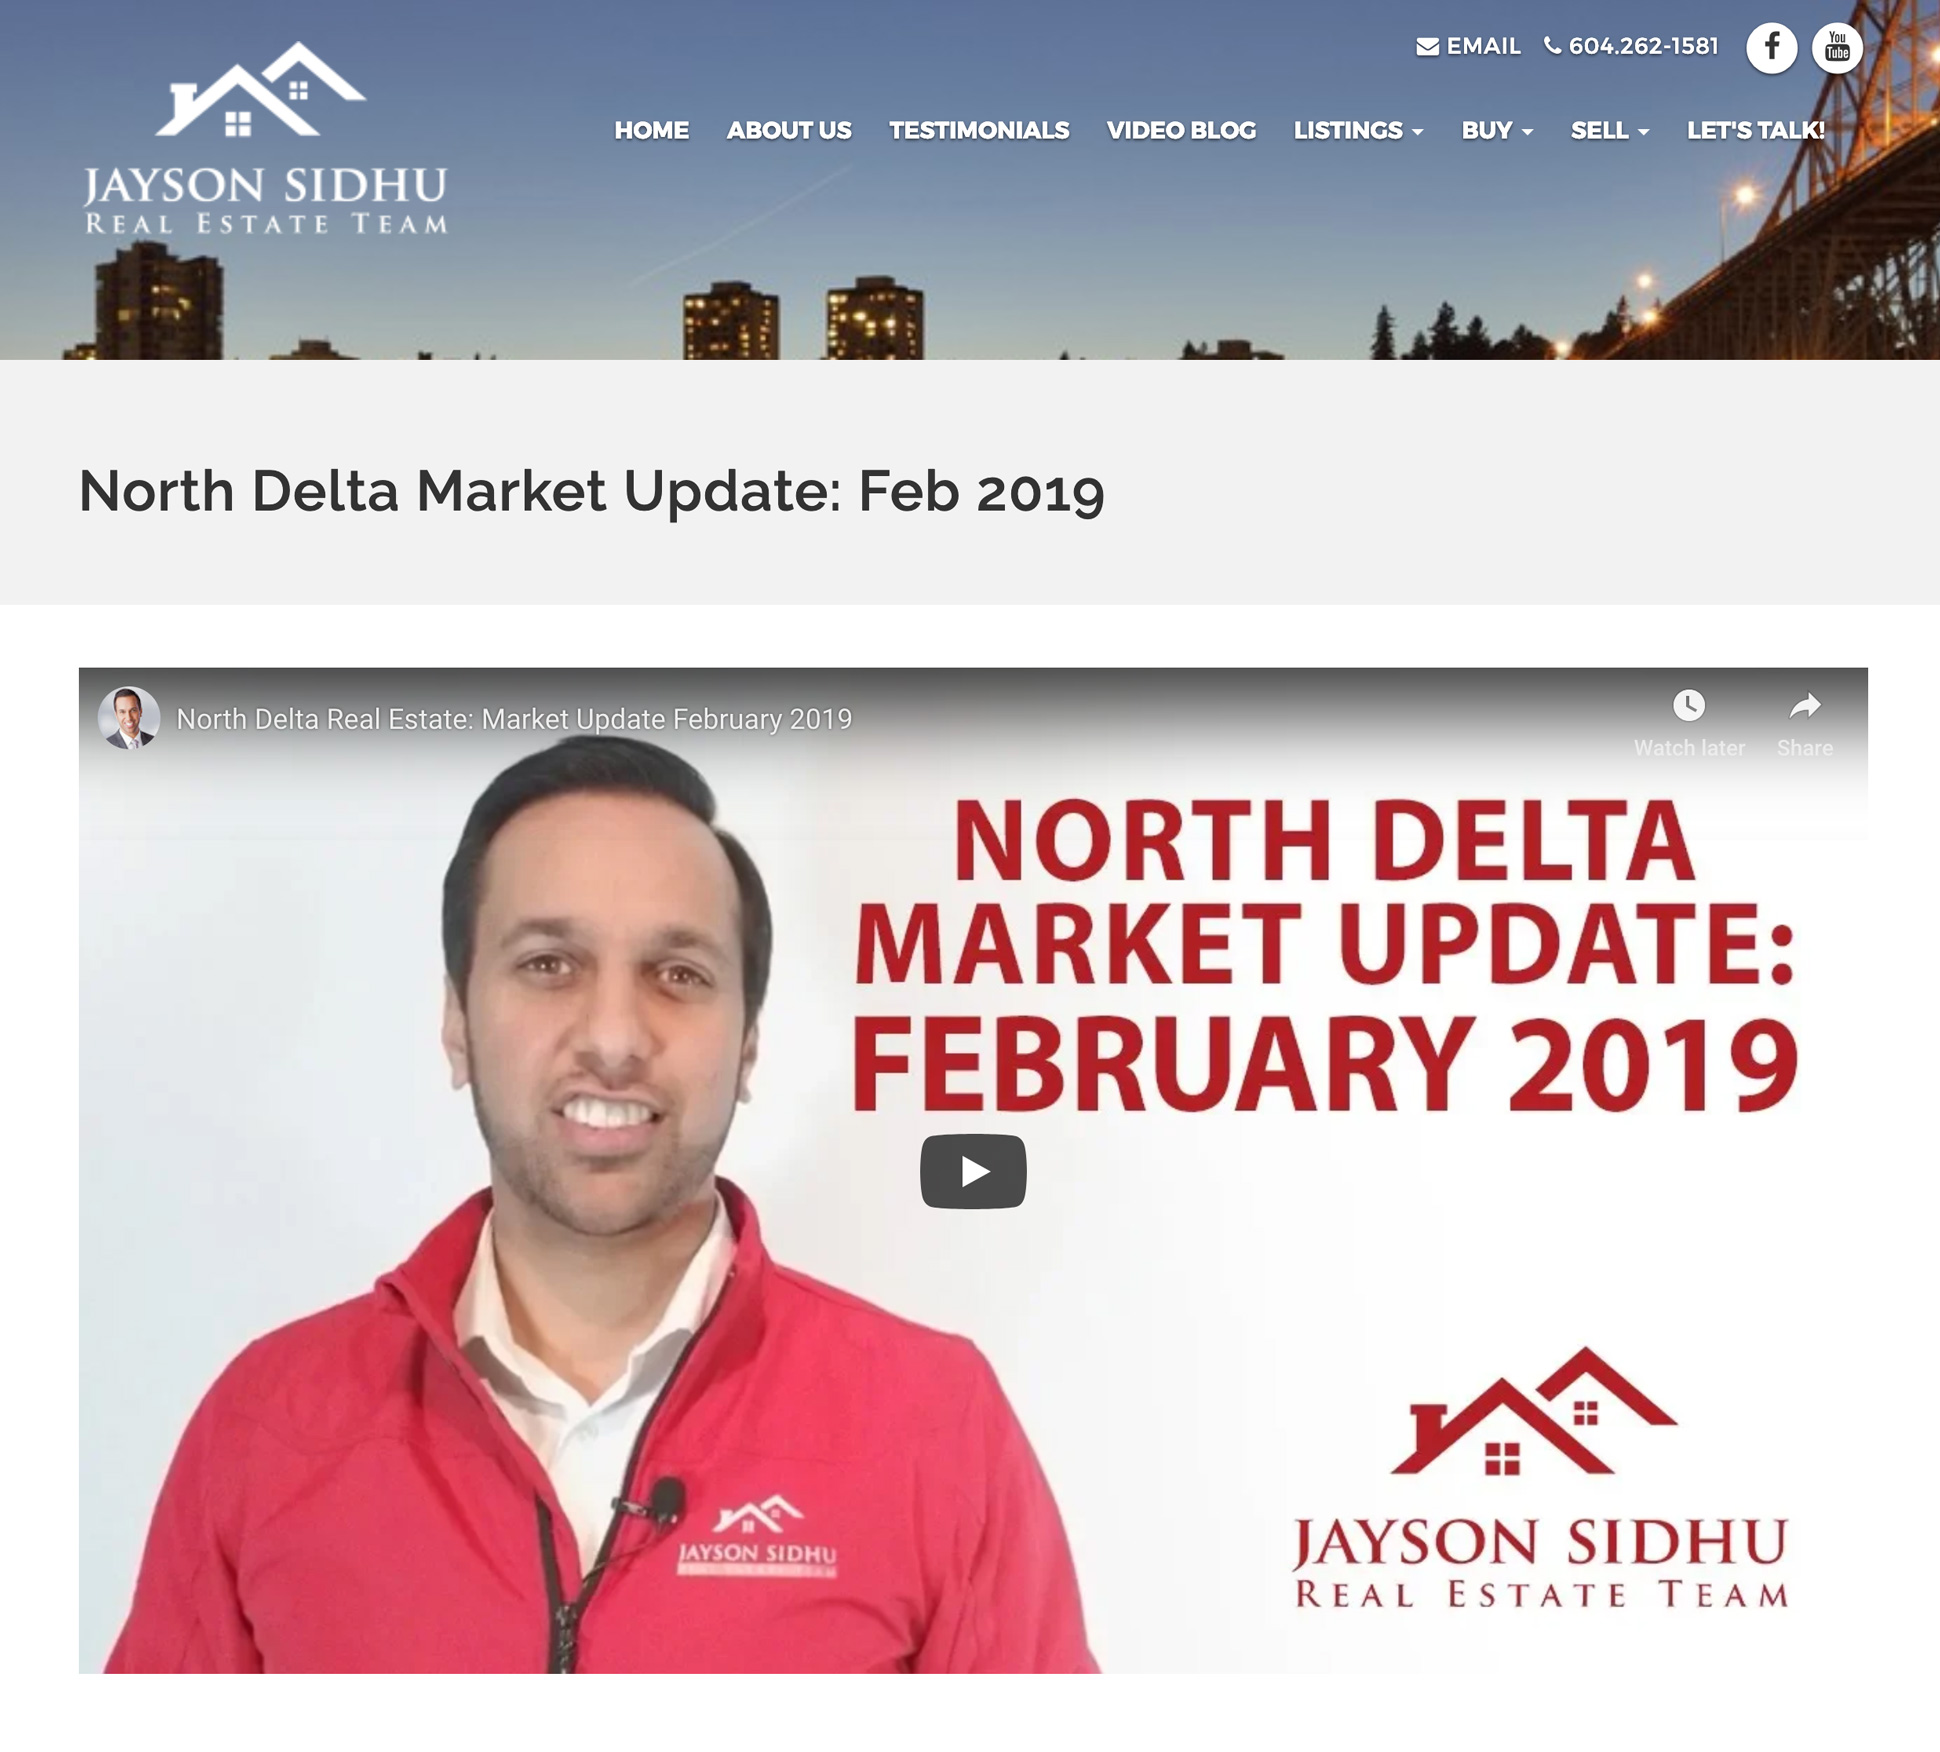 Video Market Updates by Jayson Sidhu on his website